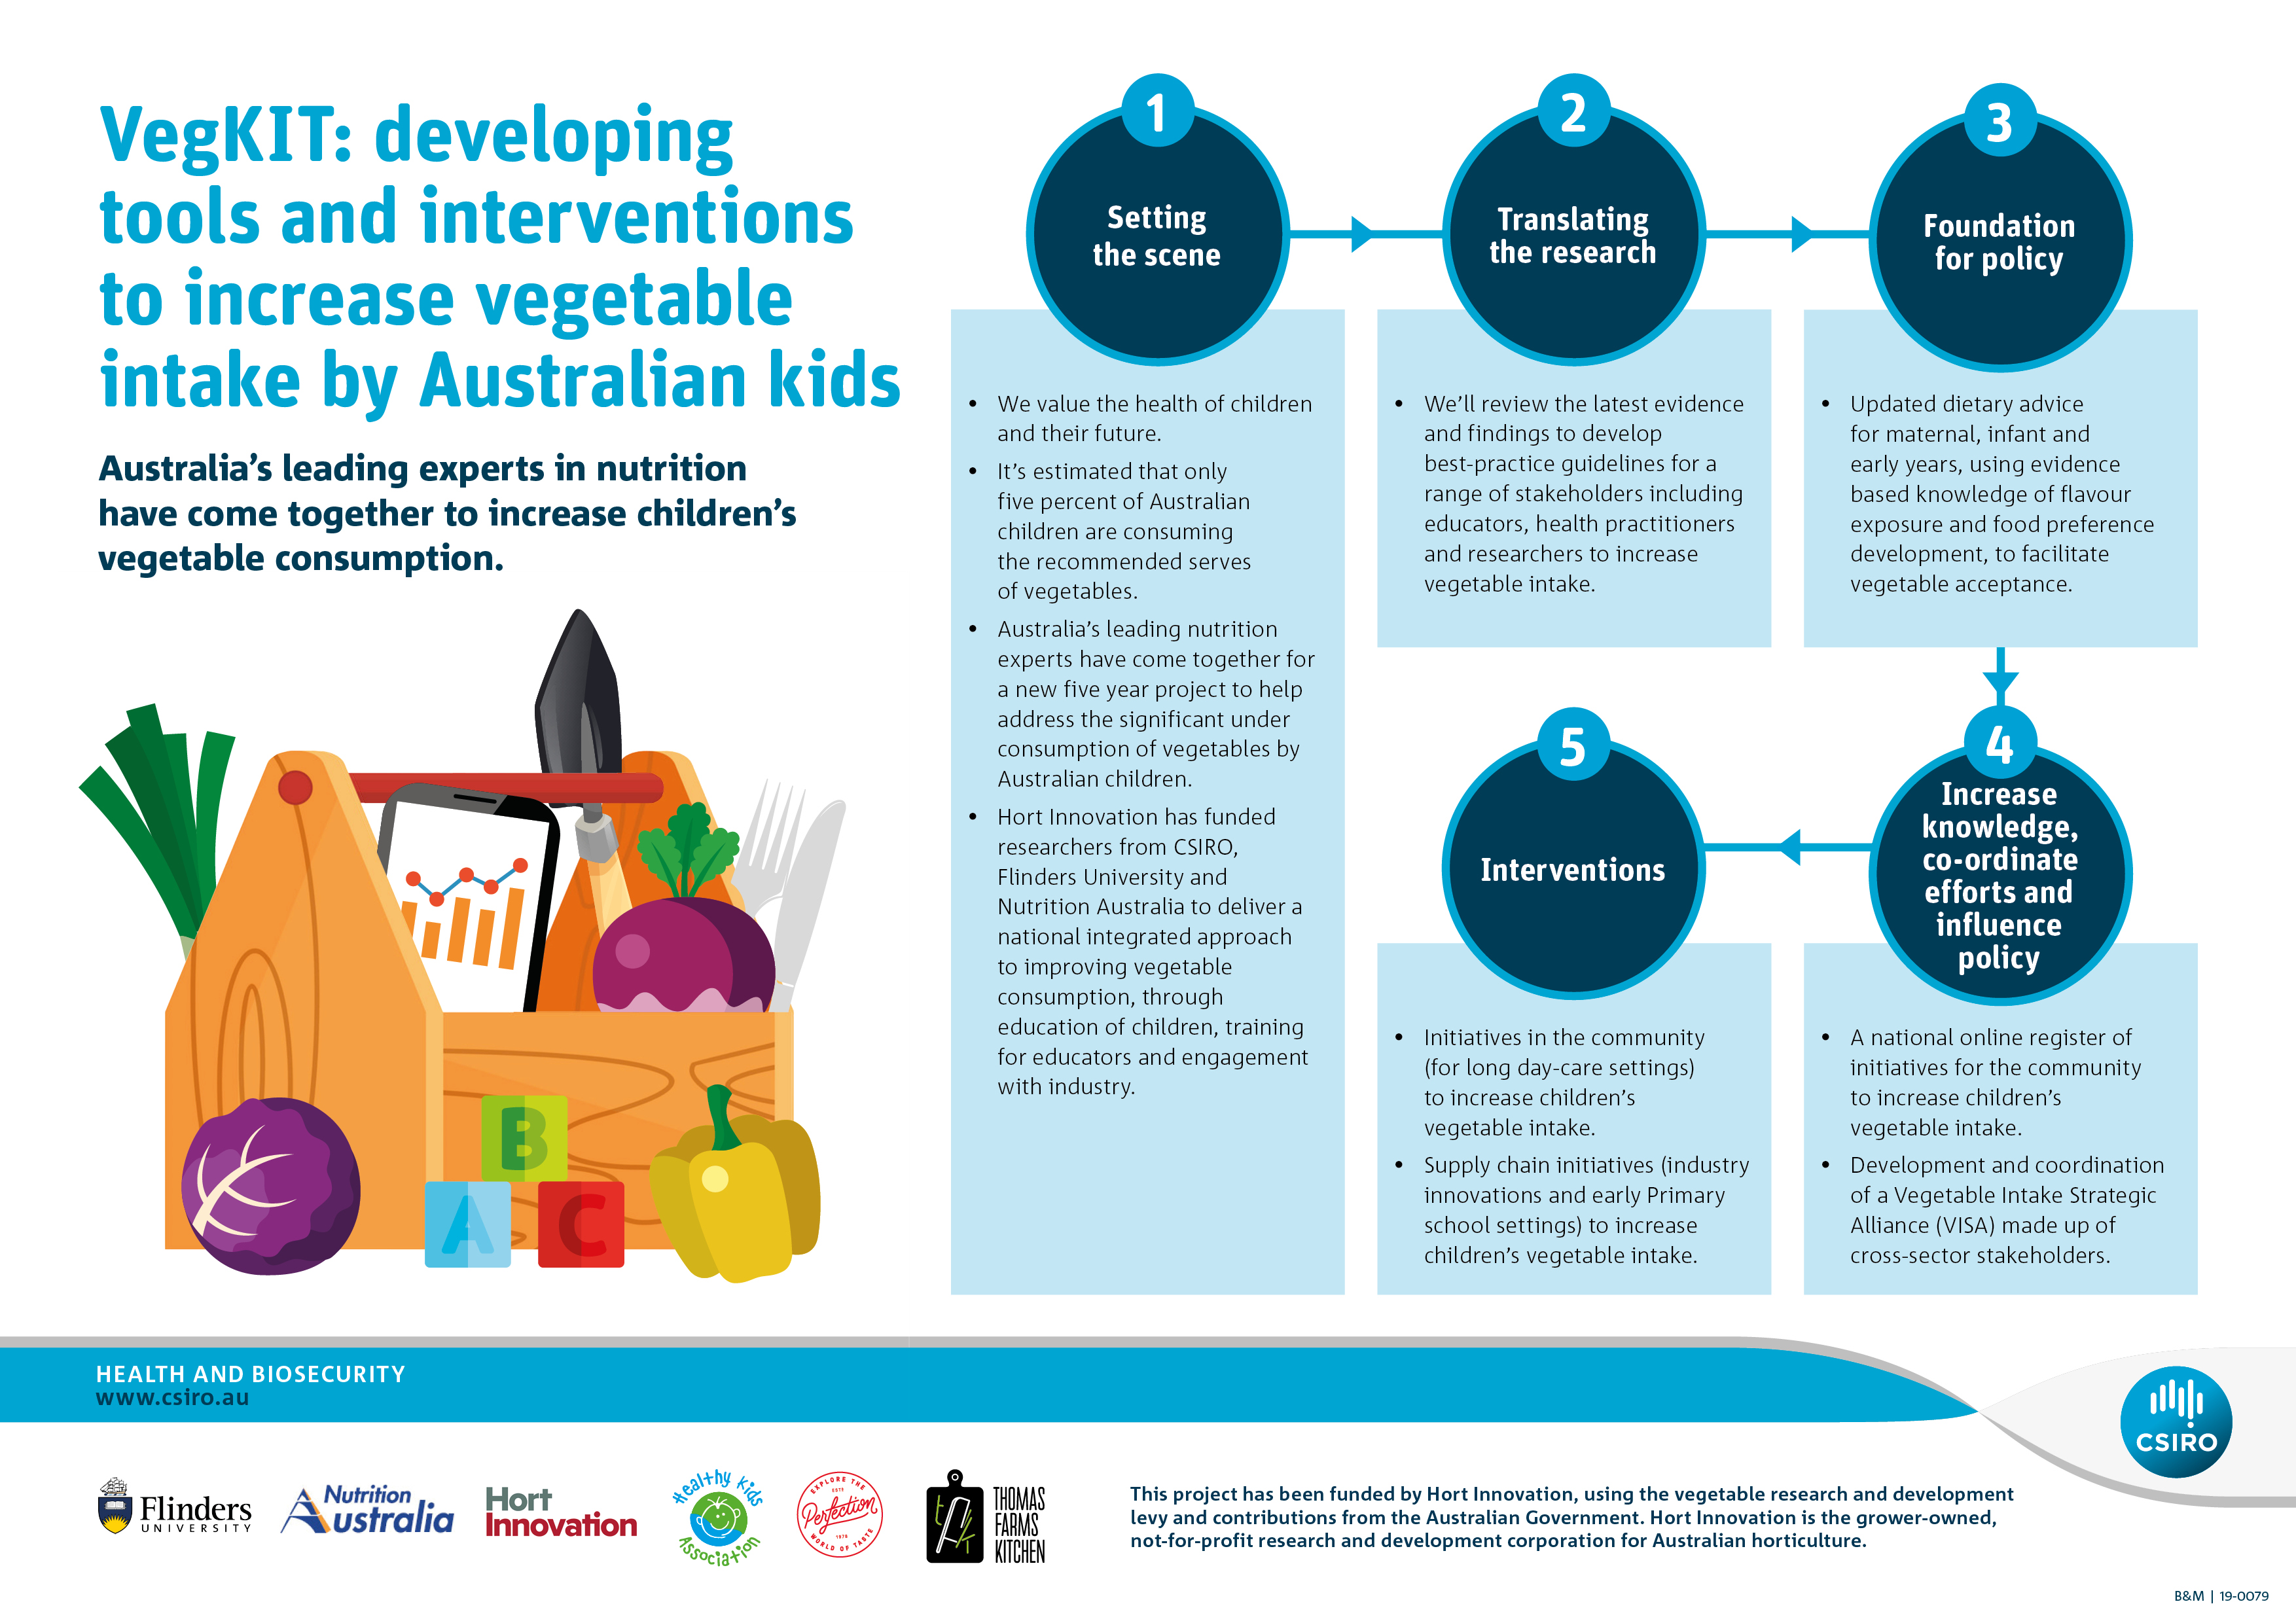 An info-graphic explaining the different activities being undertake as part of the VegKIT project